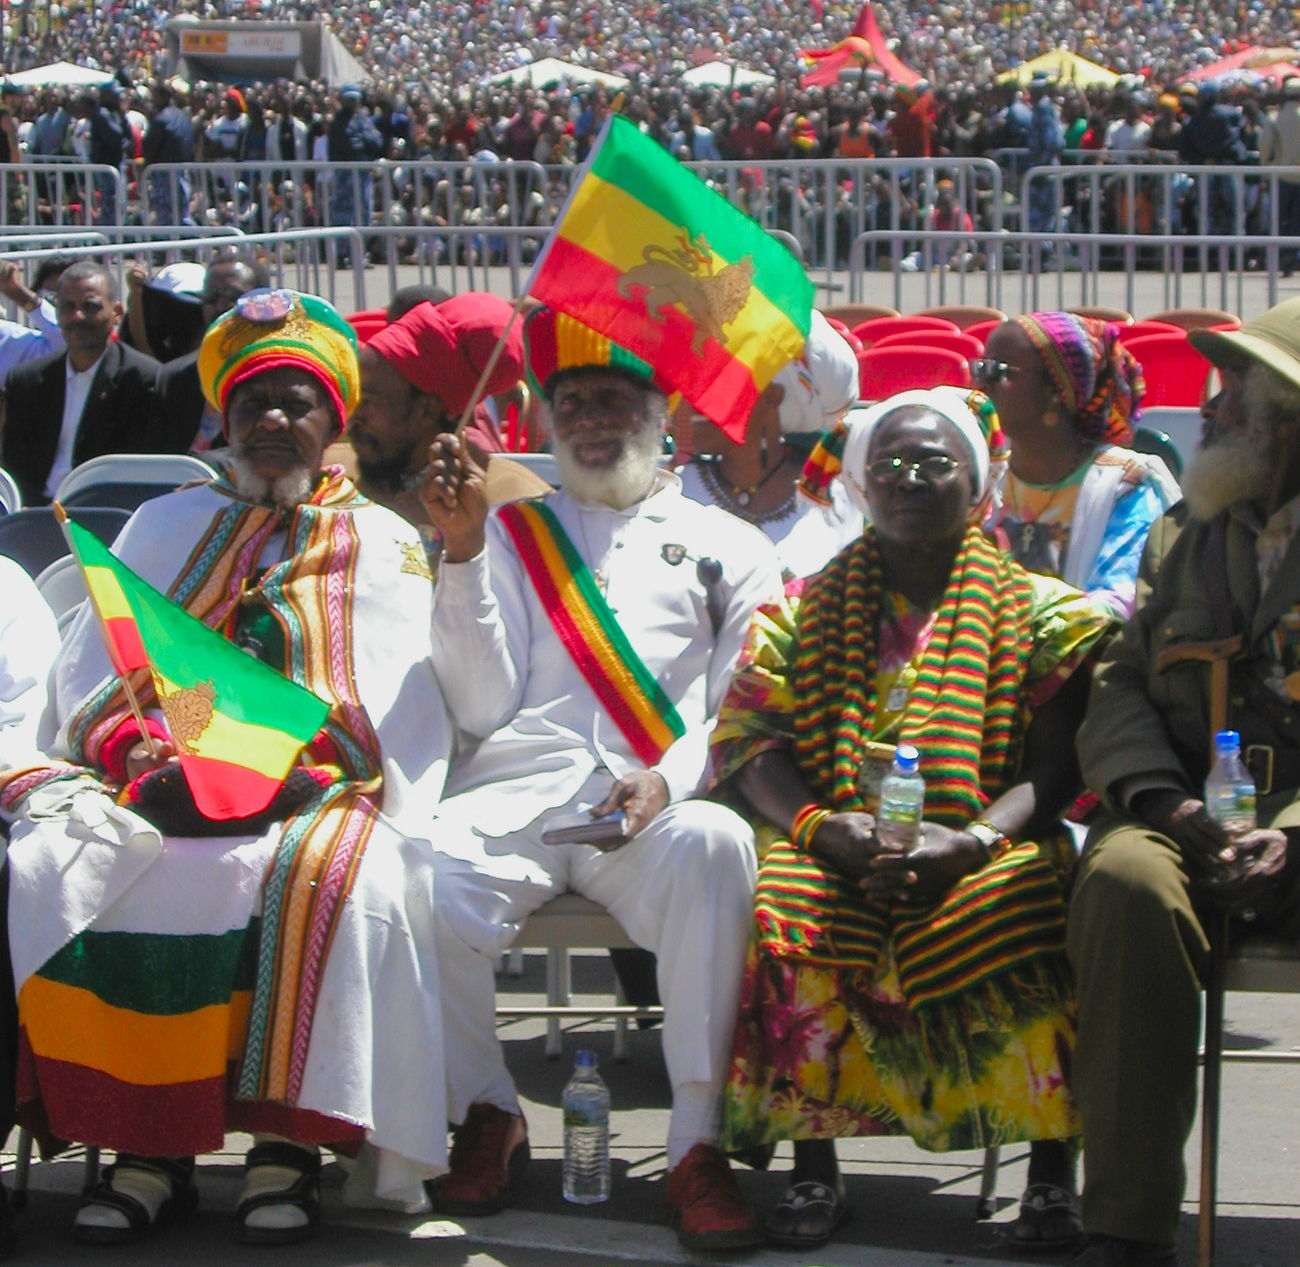 Bob Marley's 60th Brithday Celebrations Adult Bob Marley Celebration Day Elders Flag Large Group Of People Men Outdoors Patriotism People Pride RASTA Rastafari Real People Shashemane Togetherness Unity